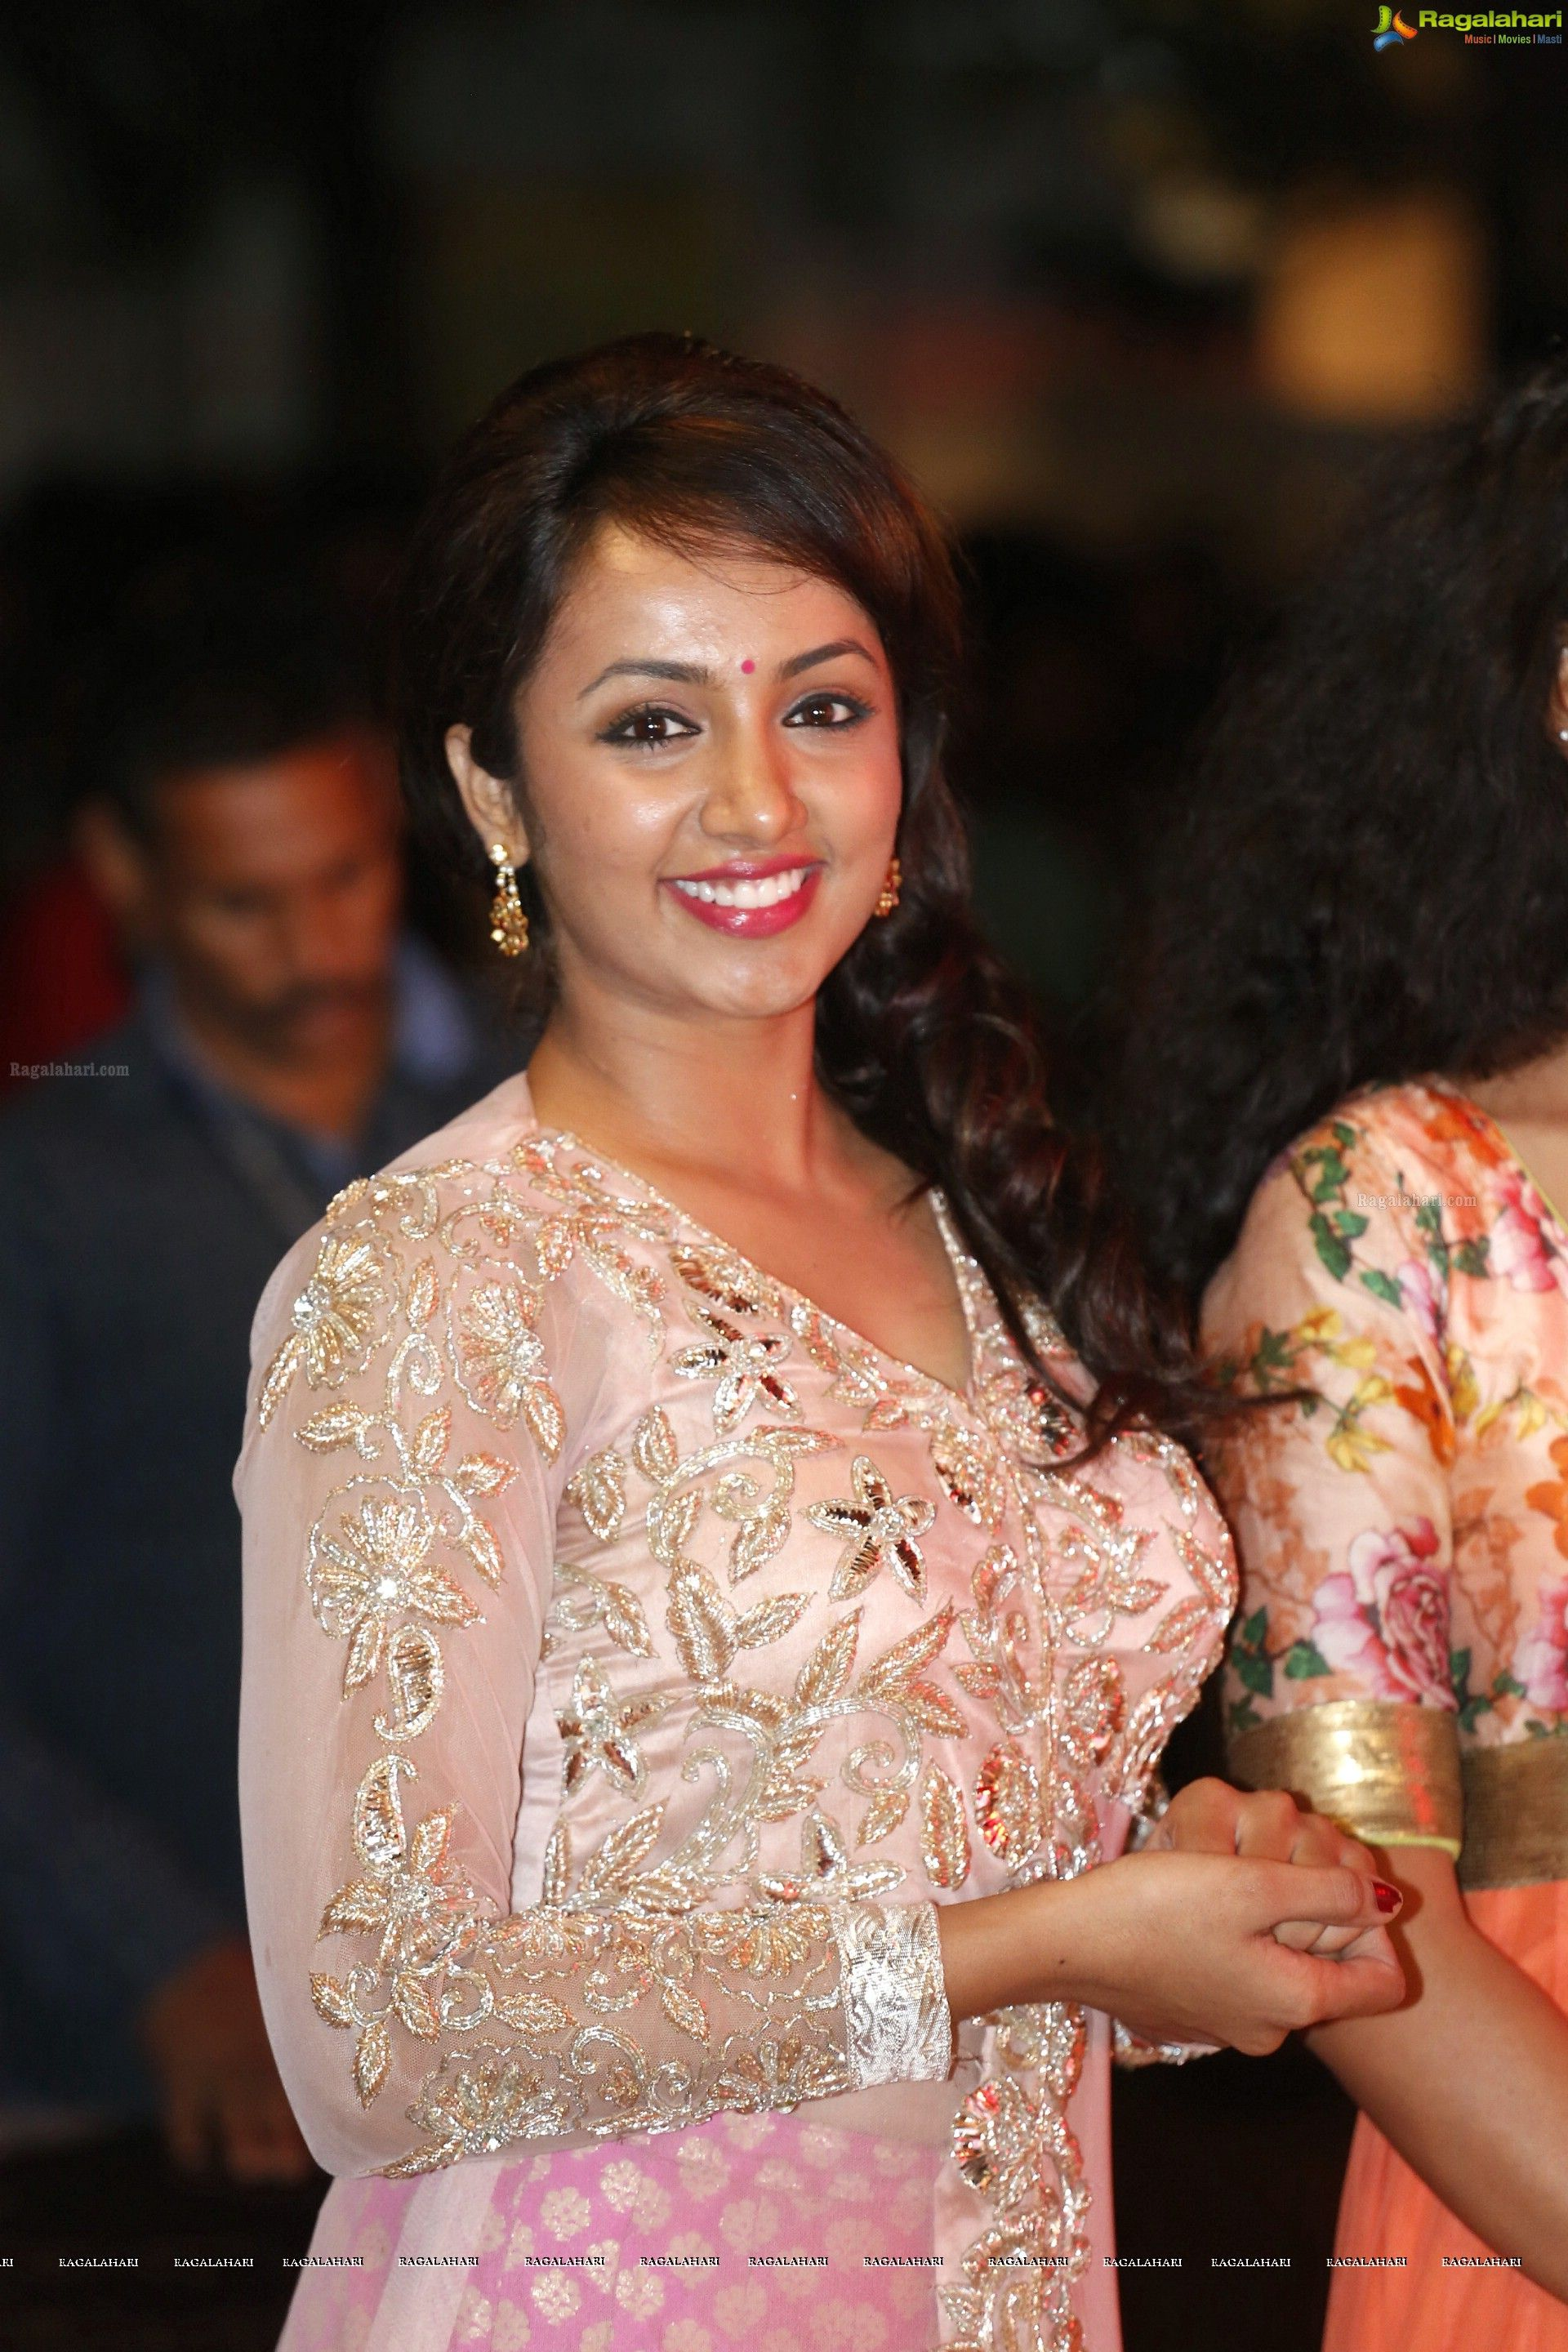 Tejaswi Madivada (High Definition) Image 1 Actresses